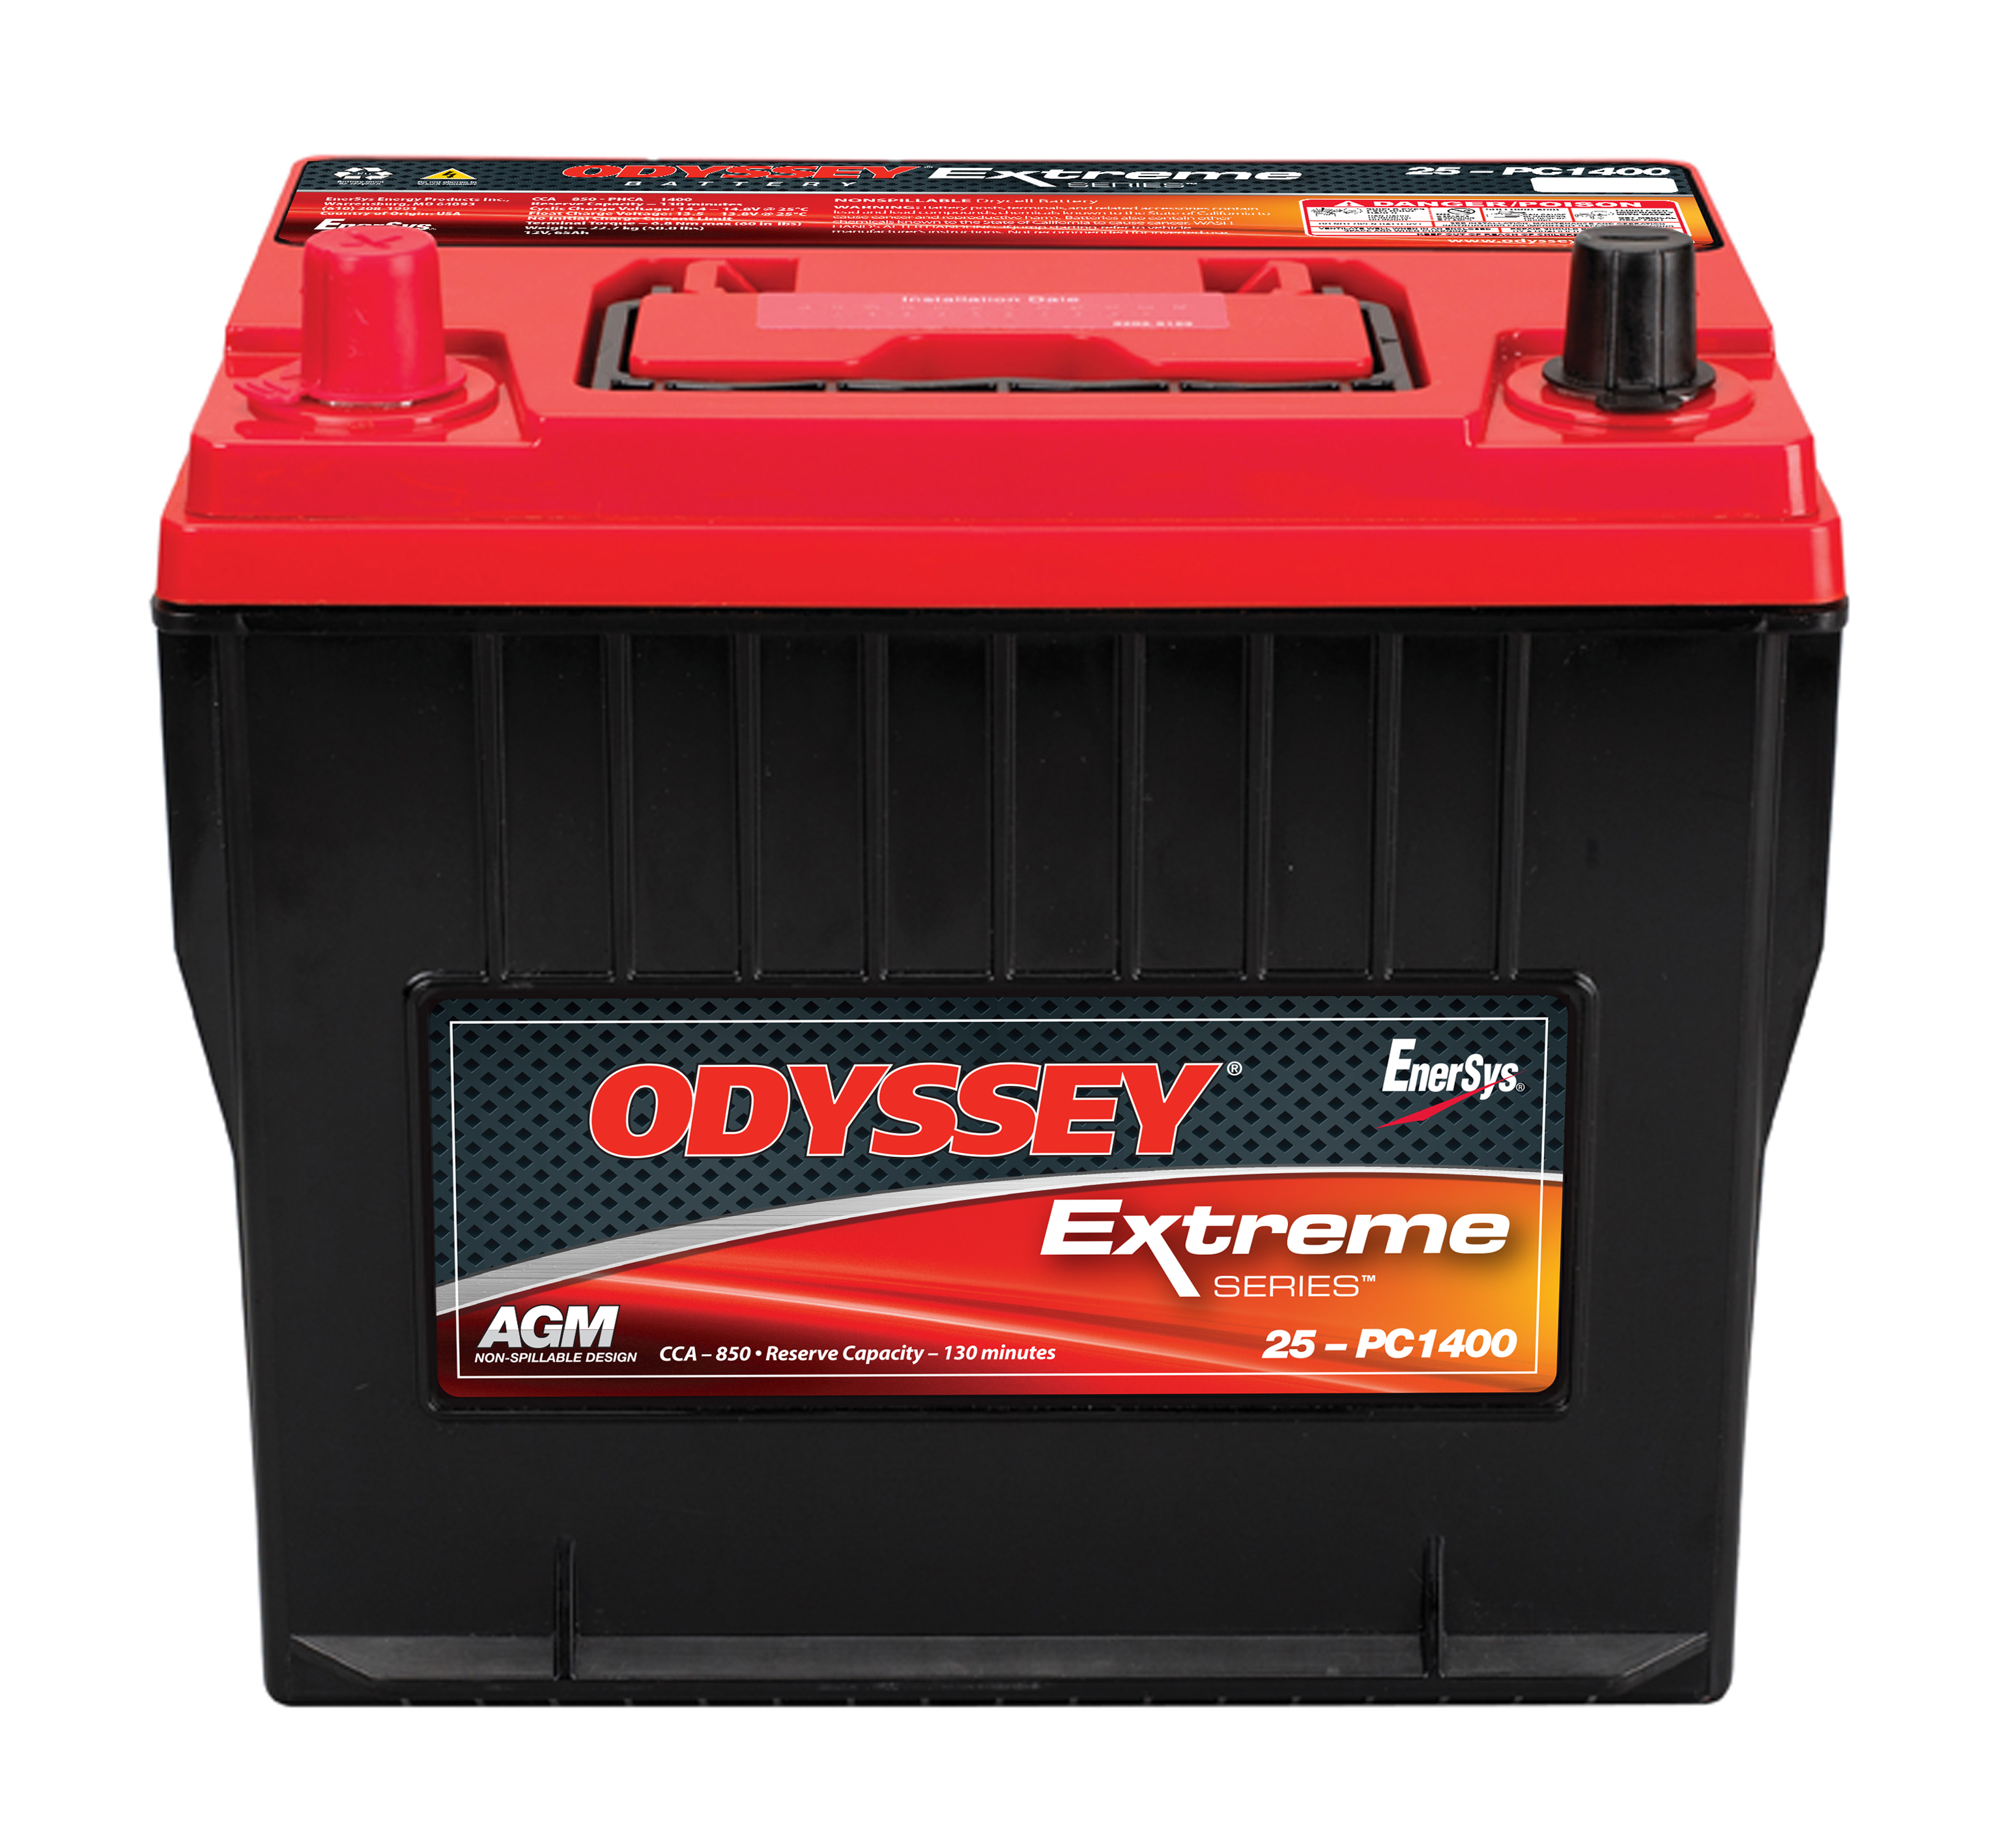 Odyssey Extreme Grp 25